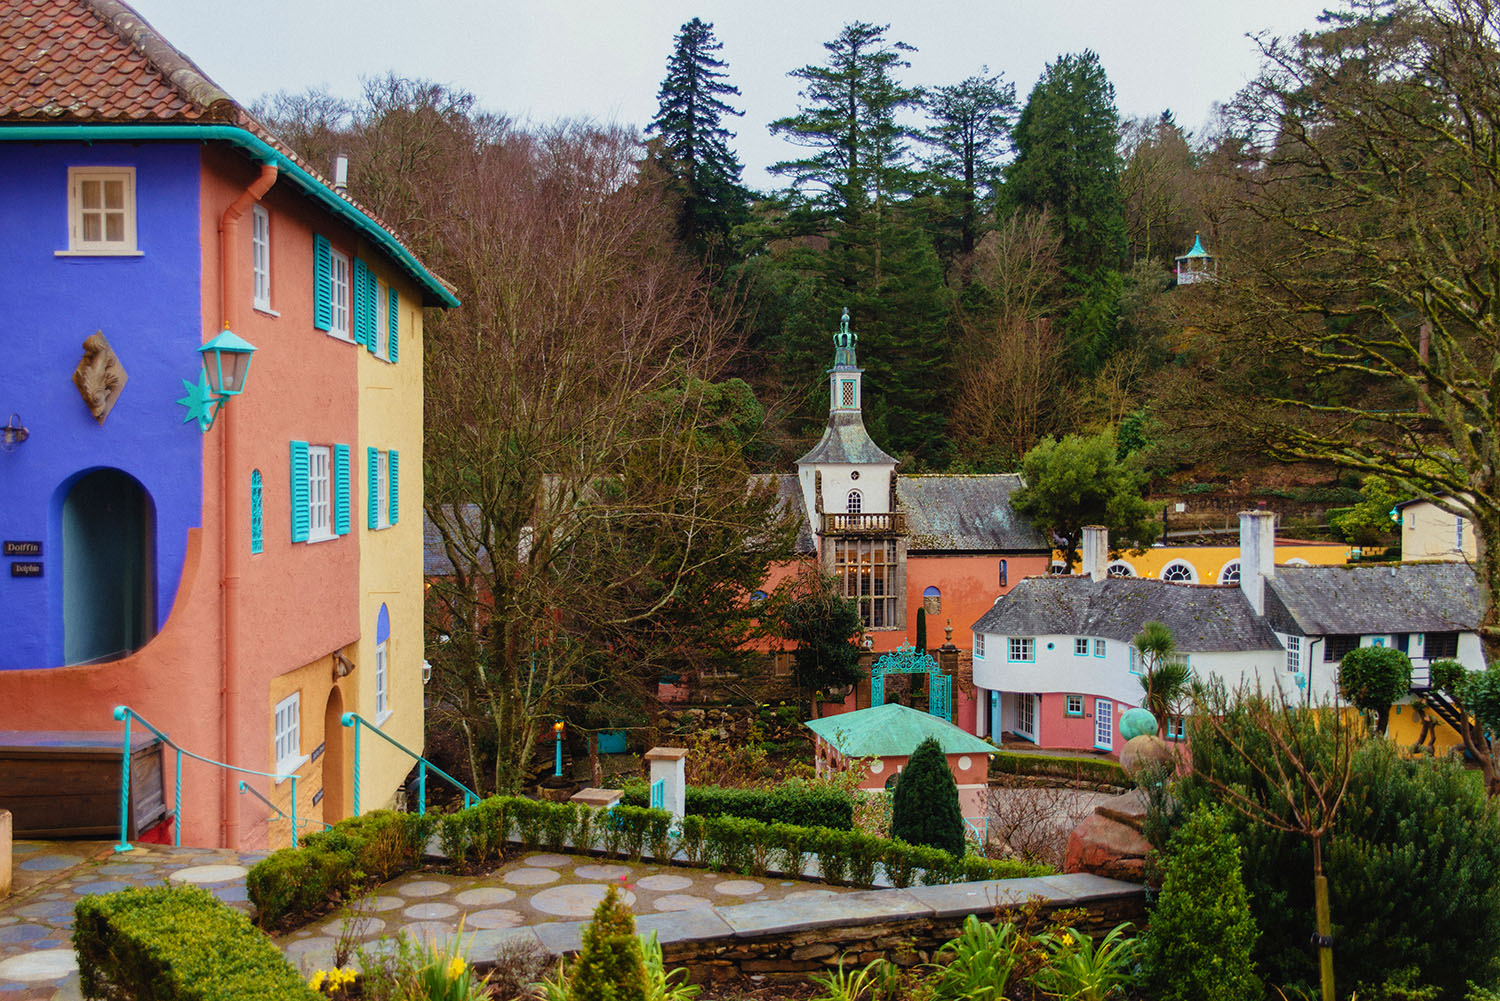 Portmeirion Village in Wales - A Fantasy Getaway